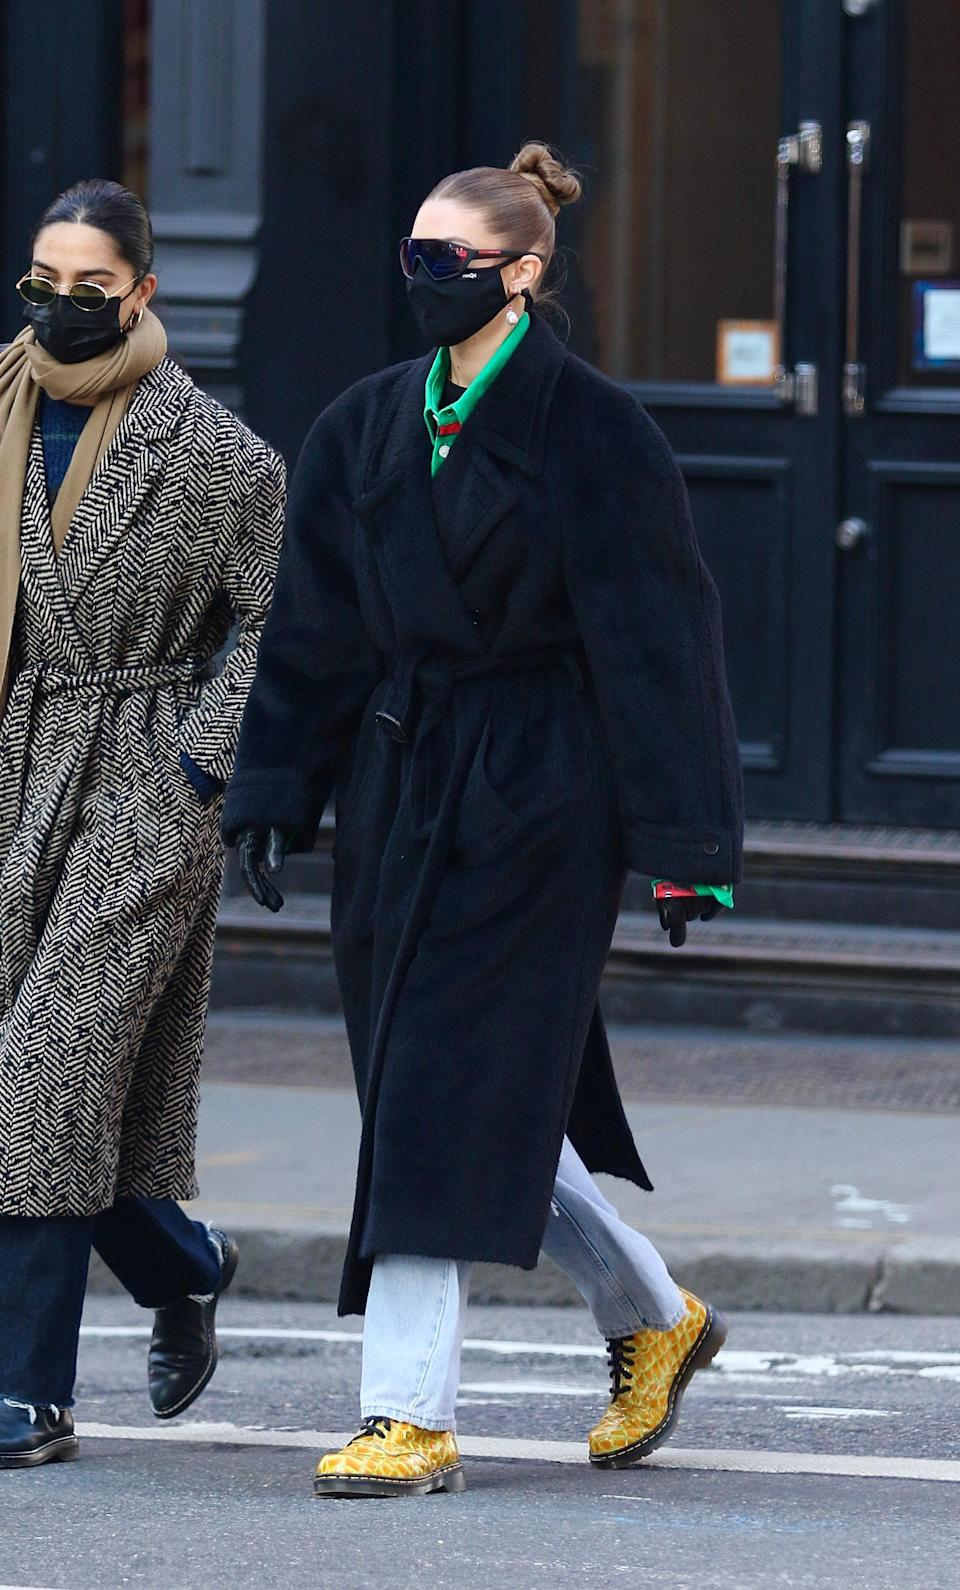 Since giving birth, Gigi has been hitting the streets of Manhattan with some of her cozier winter looks ever. This day, she opted for a pair of light-wash jeans and a black maxi coat. To add a pop of color, she went for some funky Dr. Martens (a winter must-have) and a forest green shirt. The star of the show, though? Her Prada shield sunglasses.